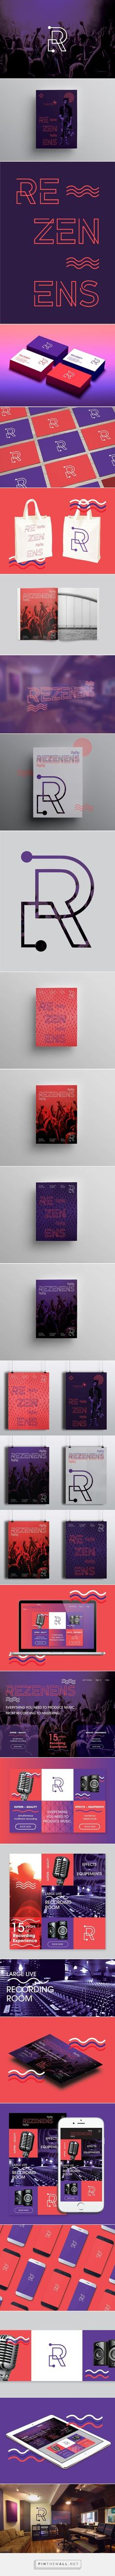 » REZENENS — Branding | Art Direction | Web Design Appears to be an Entertainer brand archet